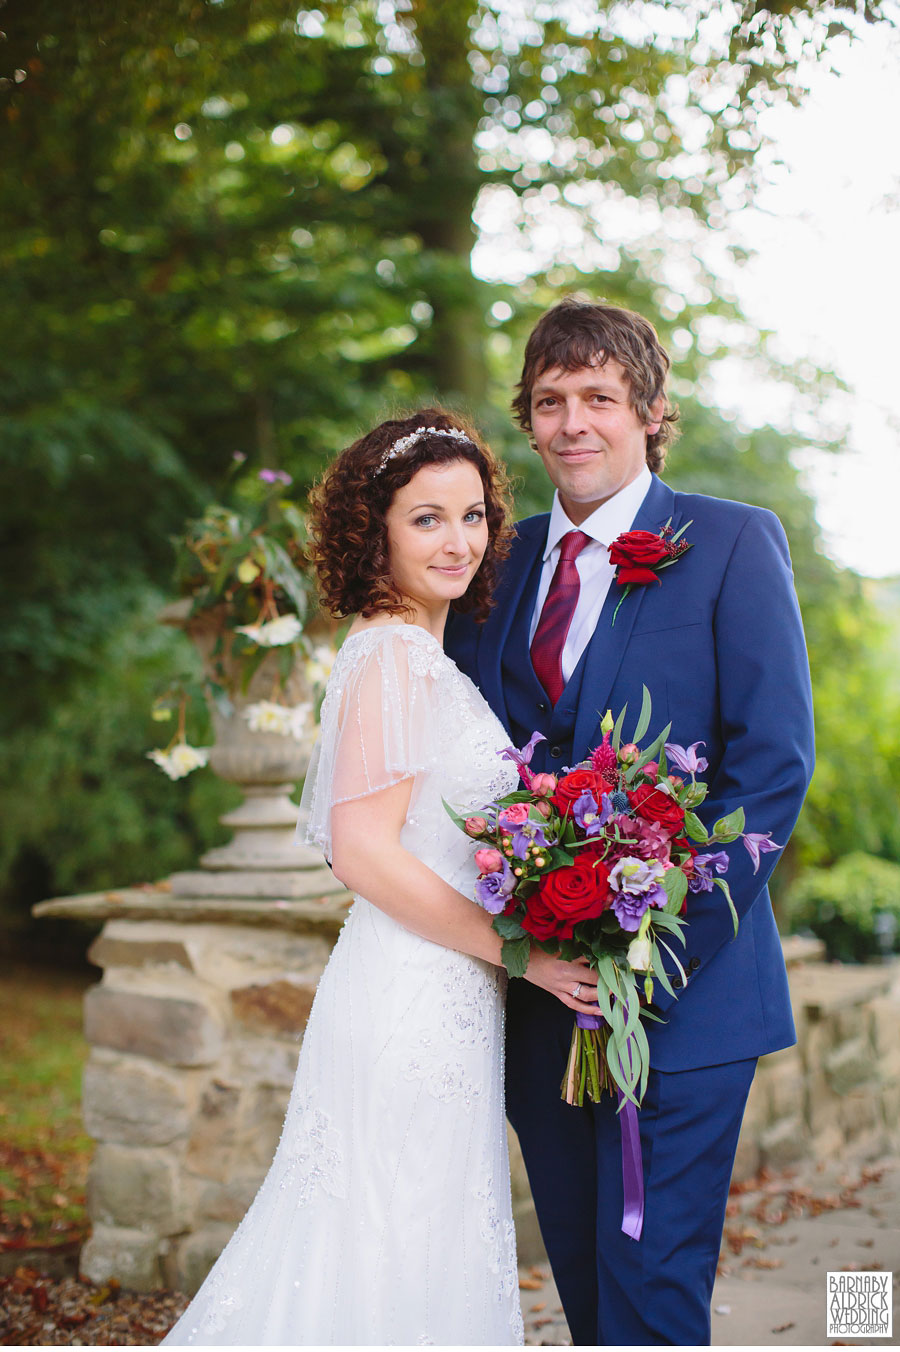 Crab and Lobster Thirsk Wedding Photography Yorkshire 035